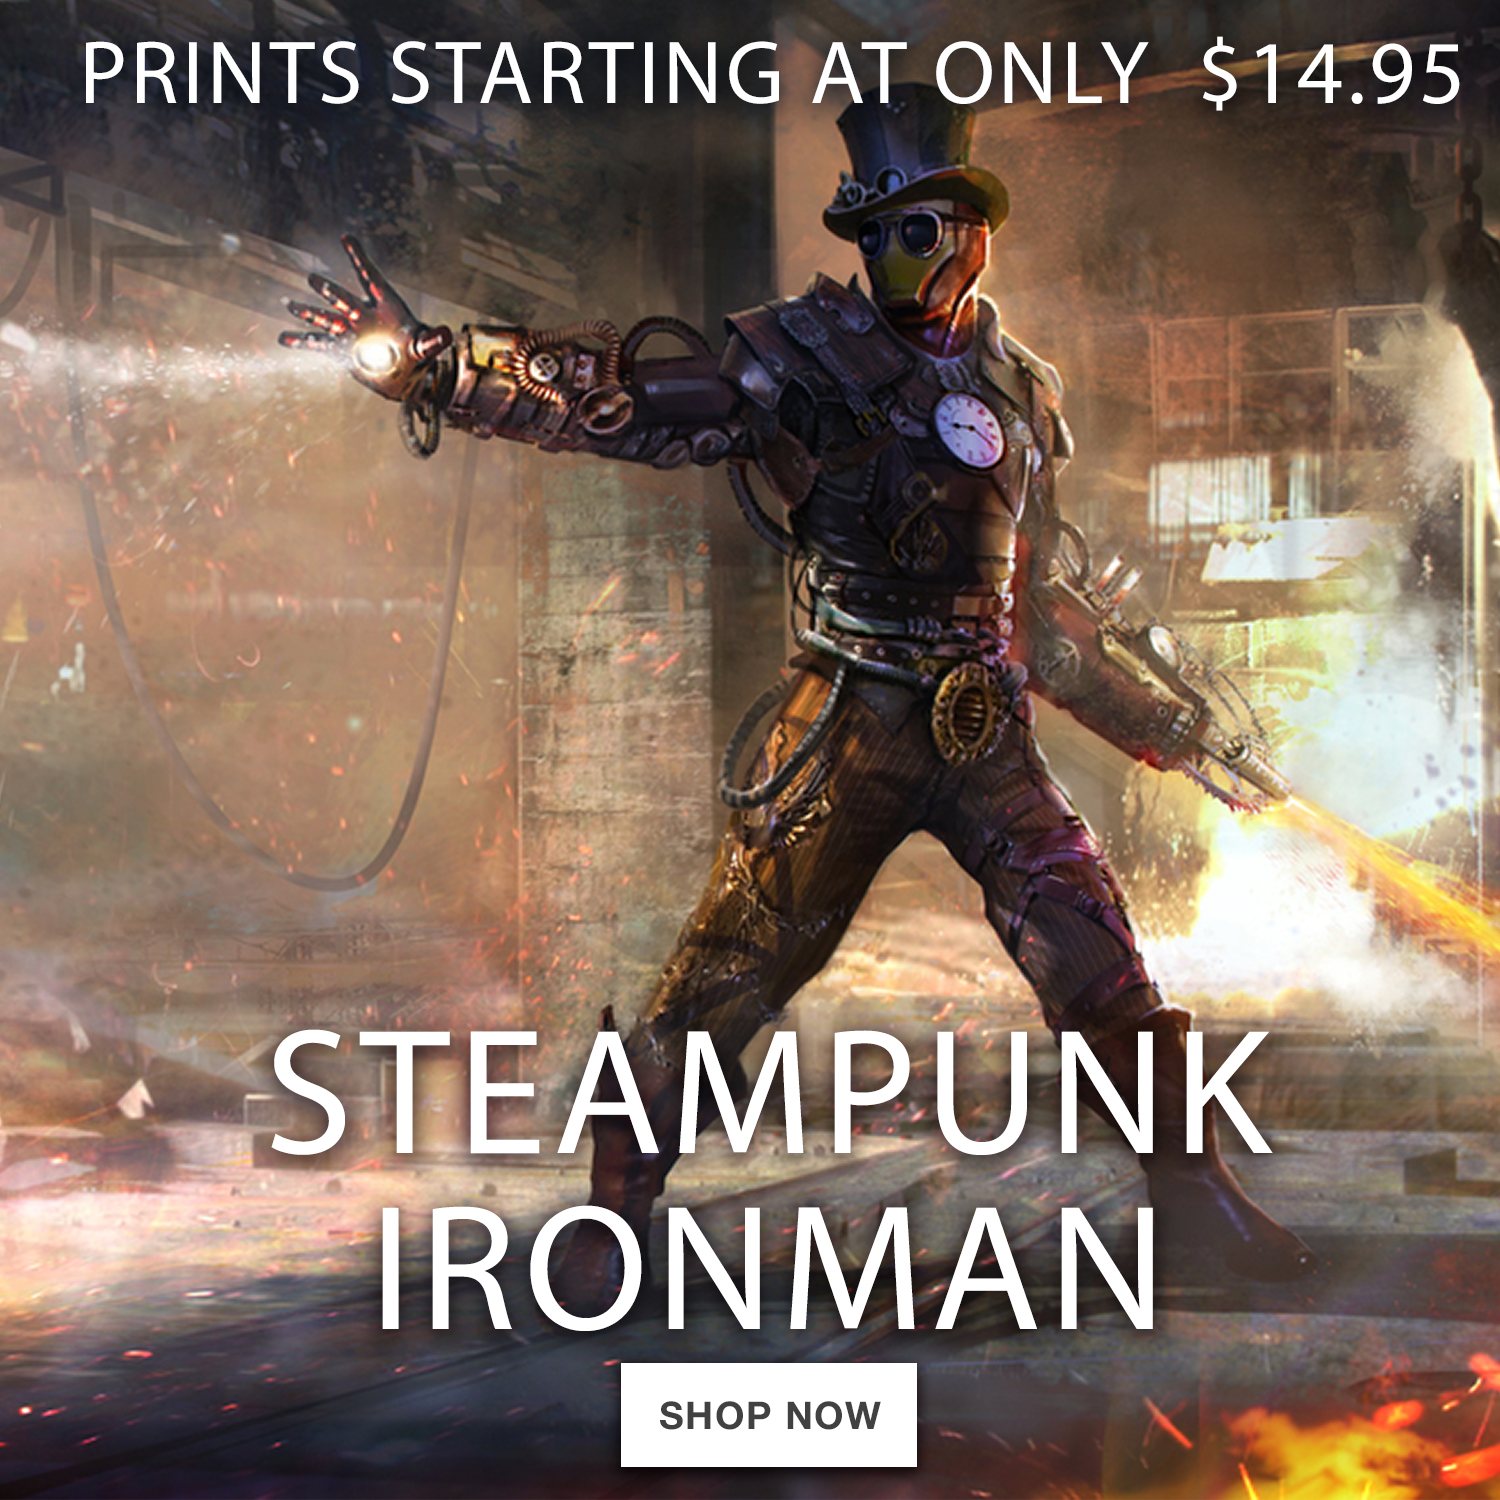 Steampunk Iron Man 900×900